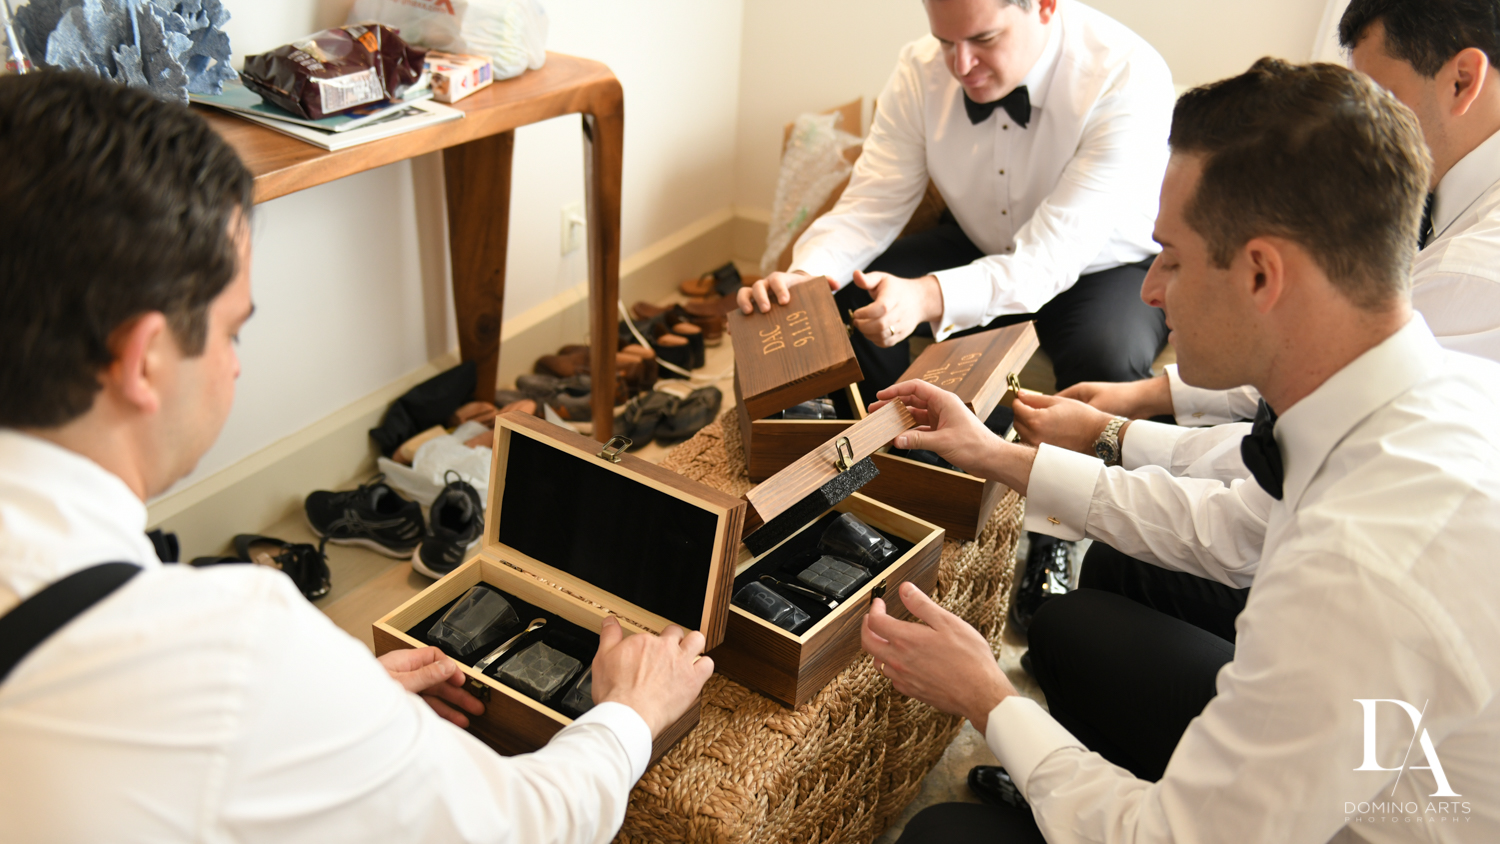 grooms gifts at Tropical Luxury Jewish Wedding in Miami Beach by Domino Arts Photography